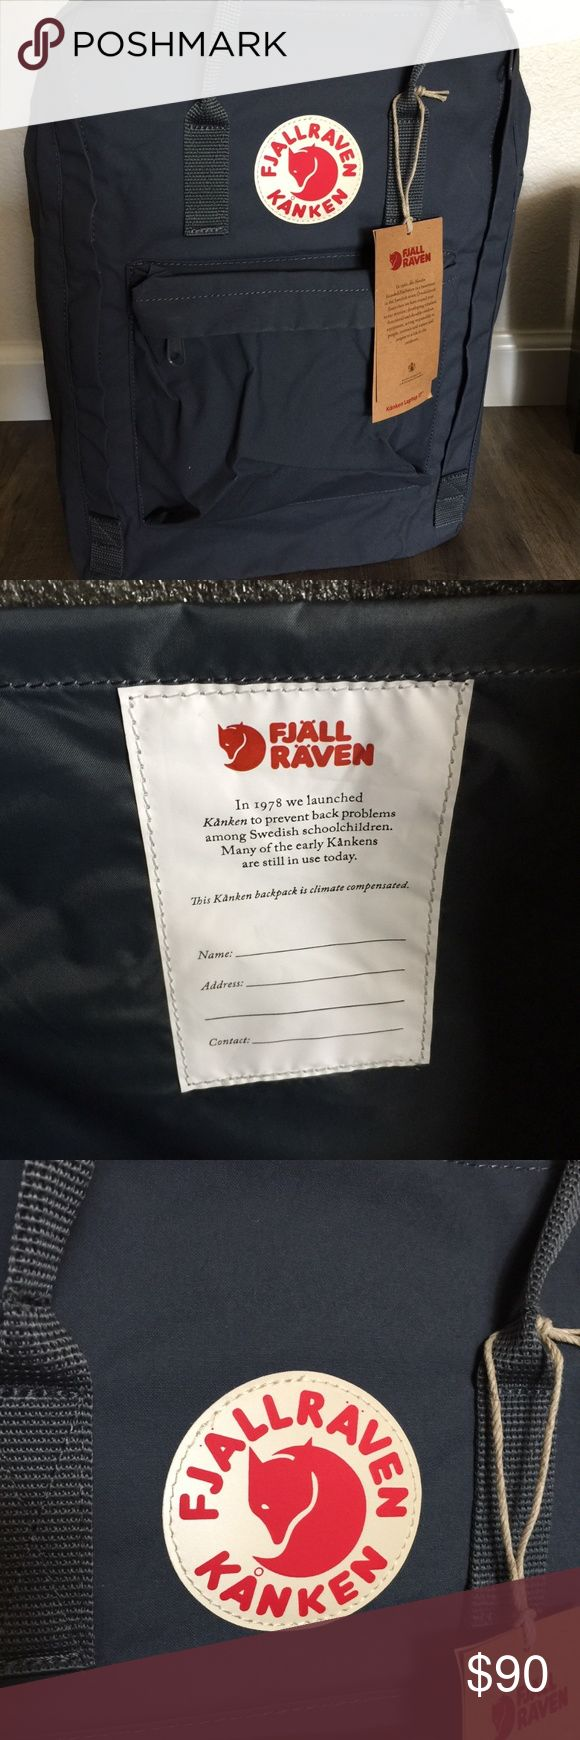 """BRAND NEW Fjallraven 17 Backpack in Graphite Brand new Fjallraven 17 Backpack! Was a gift for a friend but they already have one. (Guess I know their taste lol). Tags are still attached and the plastic where the laptop goes is still in it. Way too much of a hassle to bring it back where I bought it so I'm selling it here.  This 17"""" laptop backpack has padded shoulder straps. Large main compartment, one side pocket and a zippered pocket in the front. The entire bag is made of durable vinyl…"""